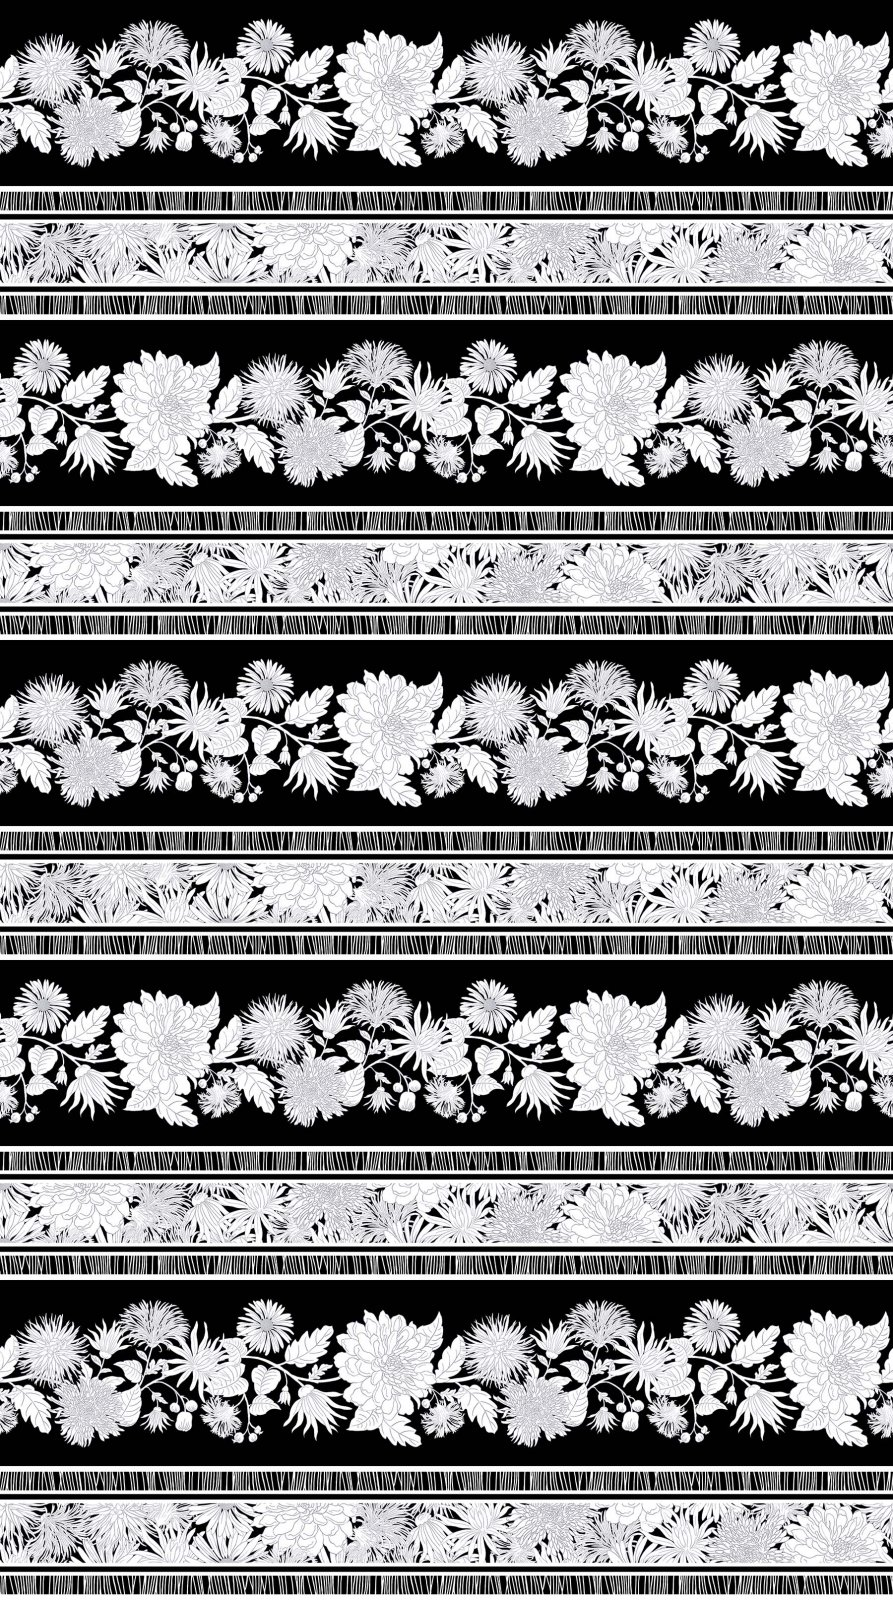 Black and White Flower Borders